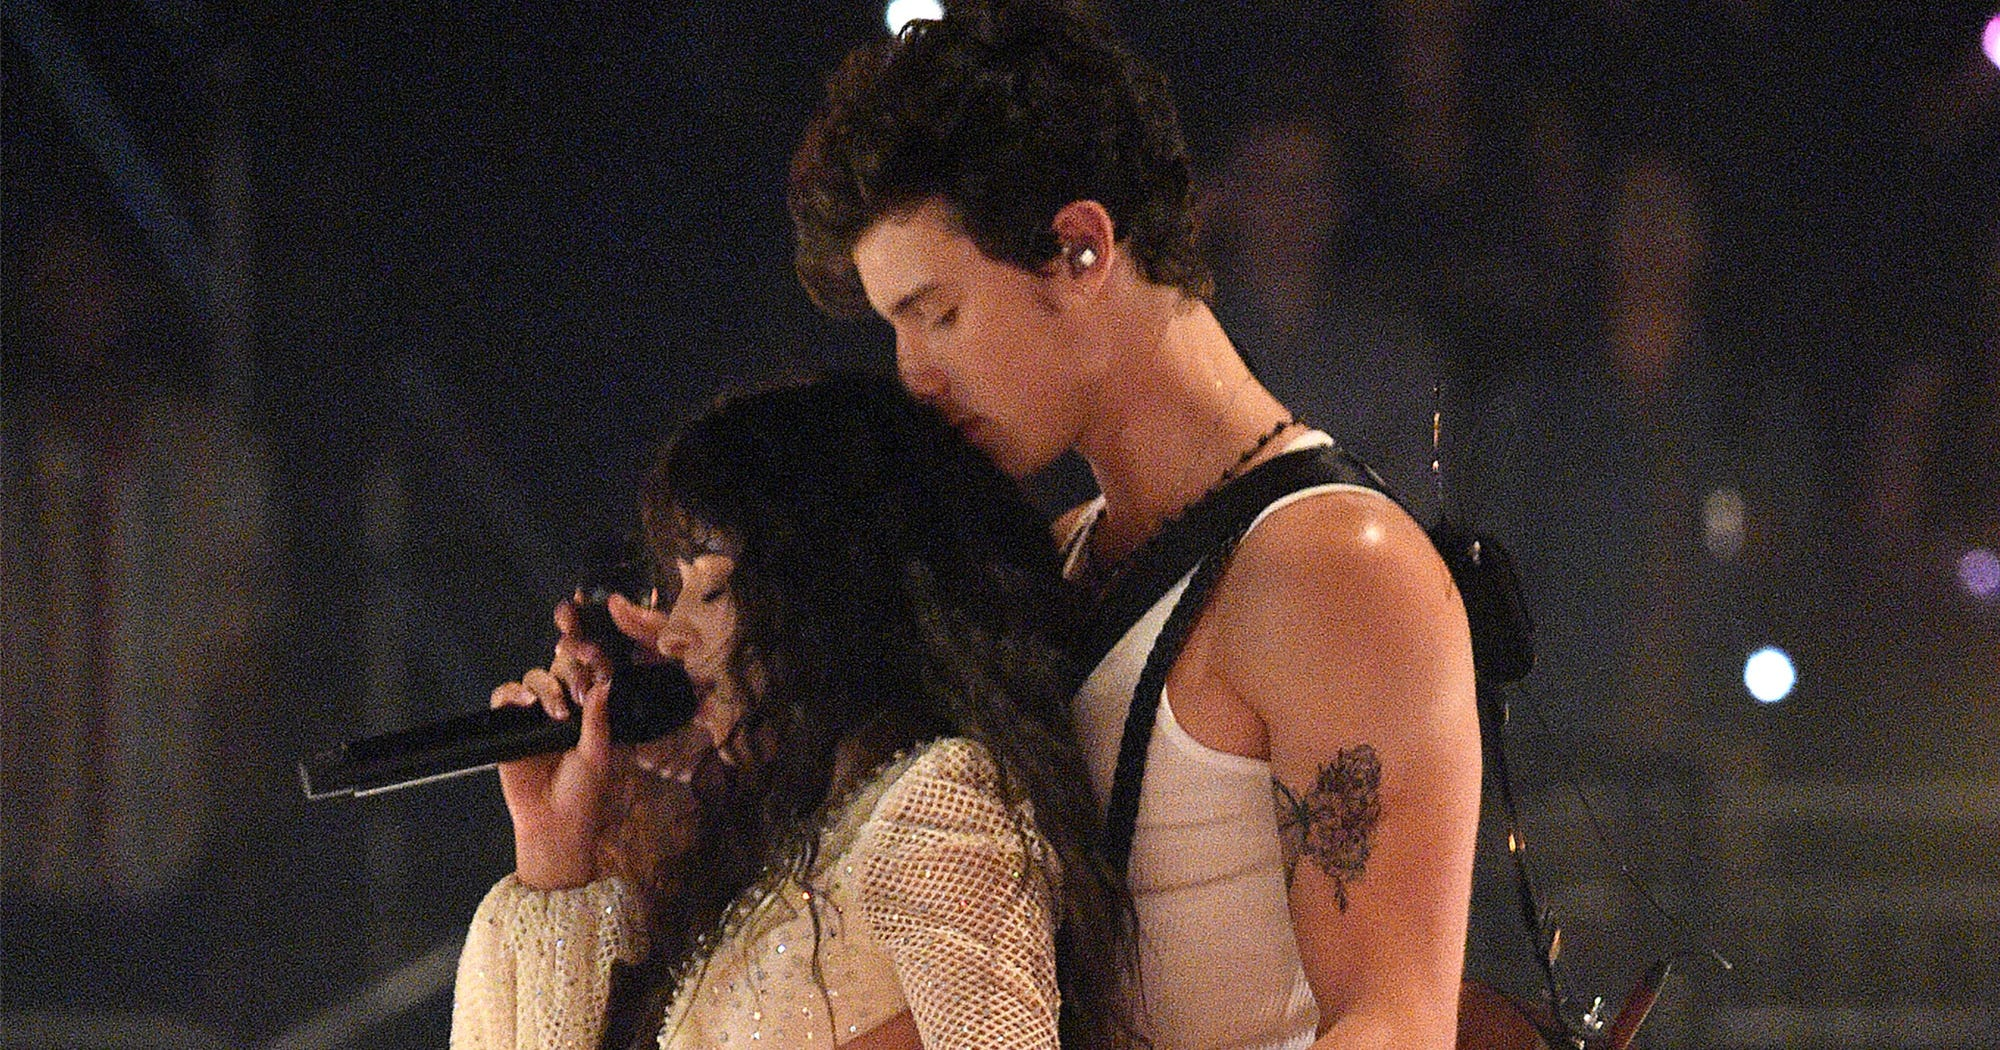 Shawn Mendes & Camila Cabello Lit Up The VMAs Stage For